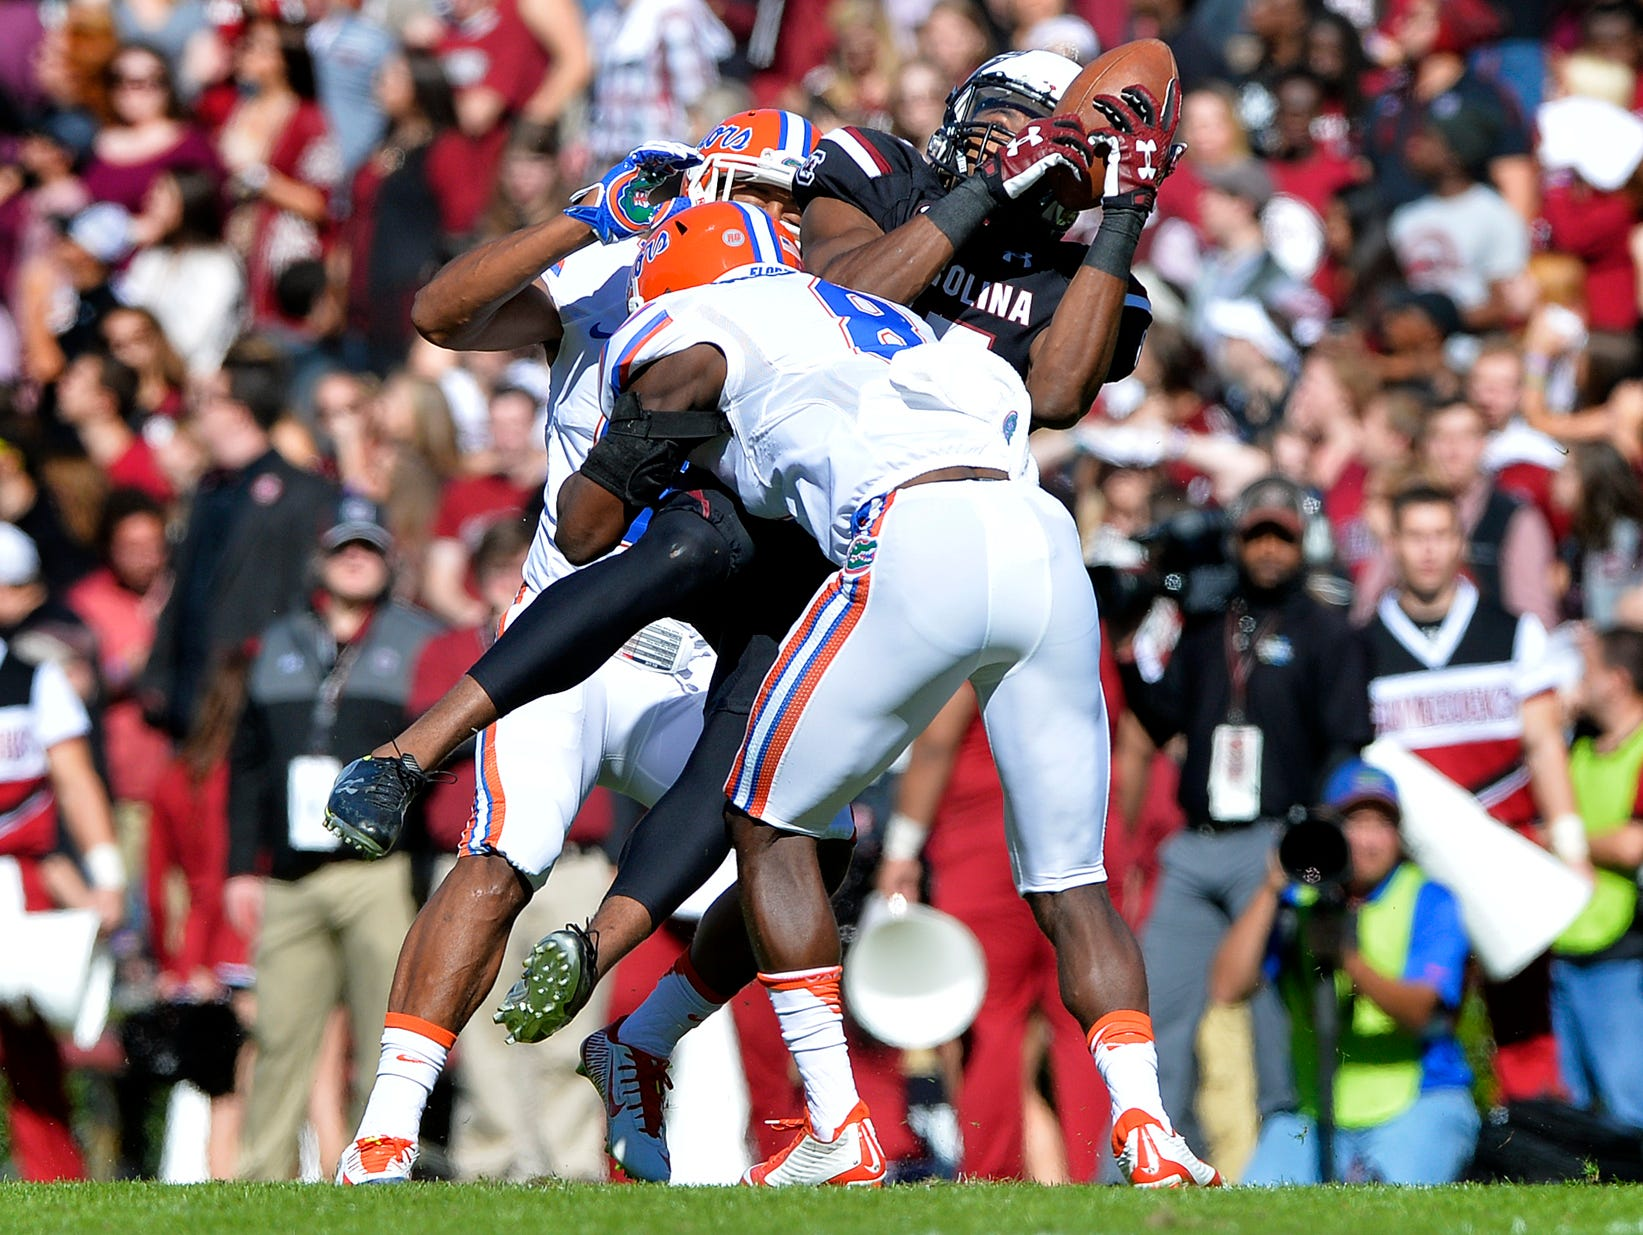 USC wide receiver Matrick Belton (15) makes a big catch but takes a big hit from two Florida defenders at Williams-Brice Stadium in Columbia on Nov. 14, 2015.